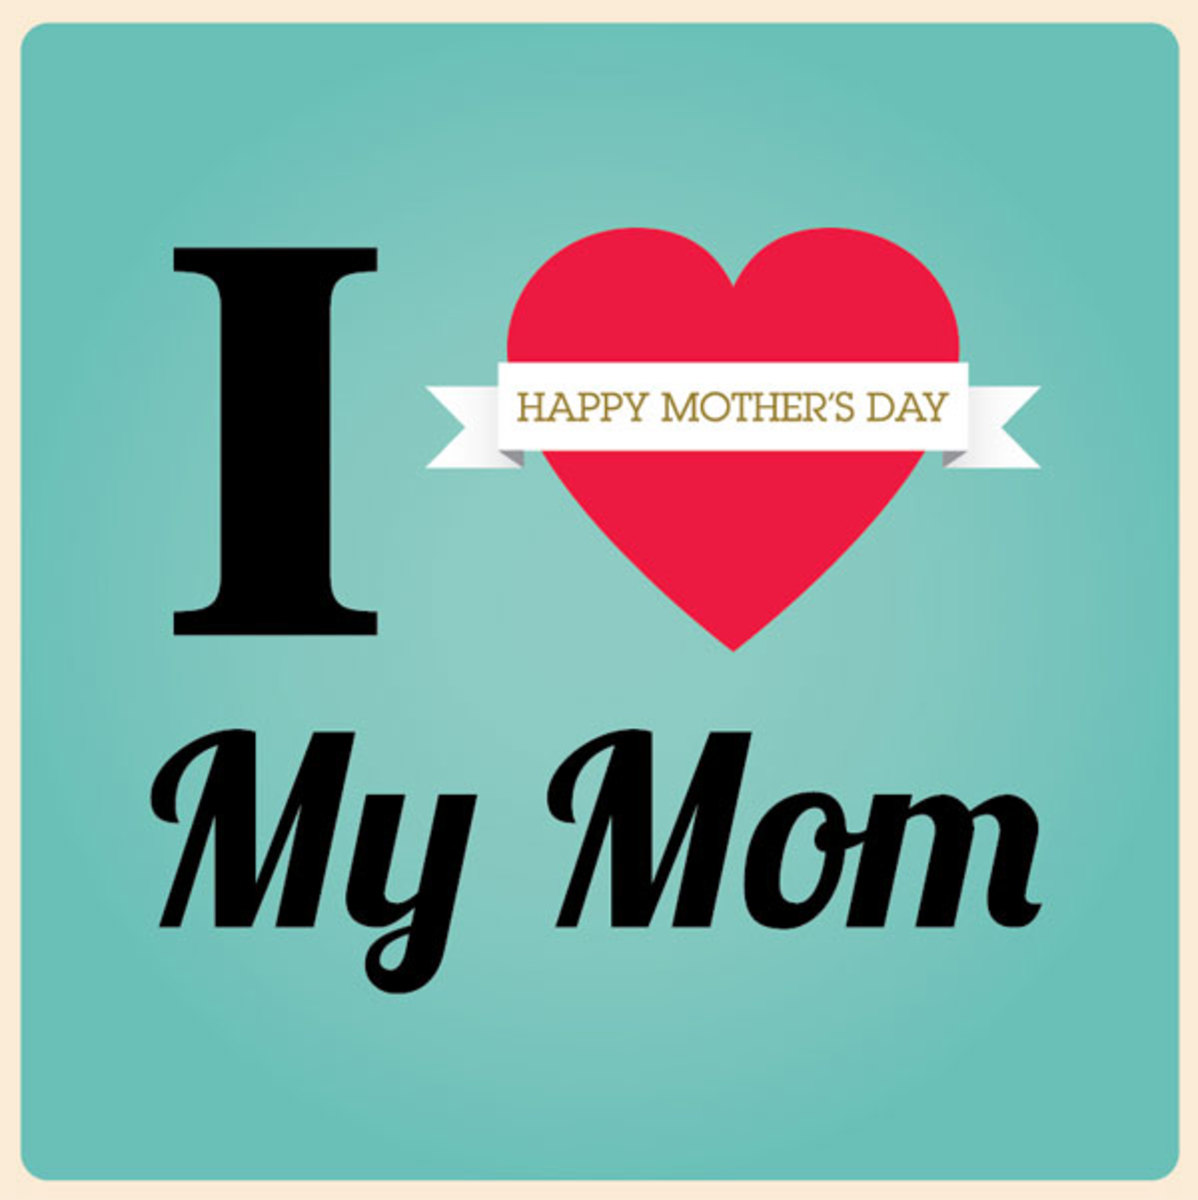 'I ♥  My Mom' on Mother's Day Card